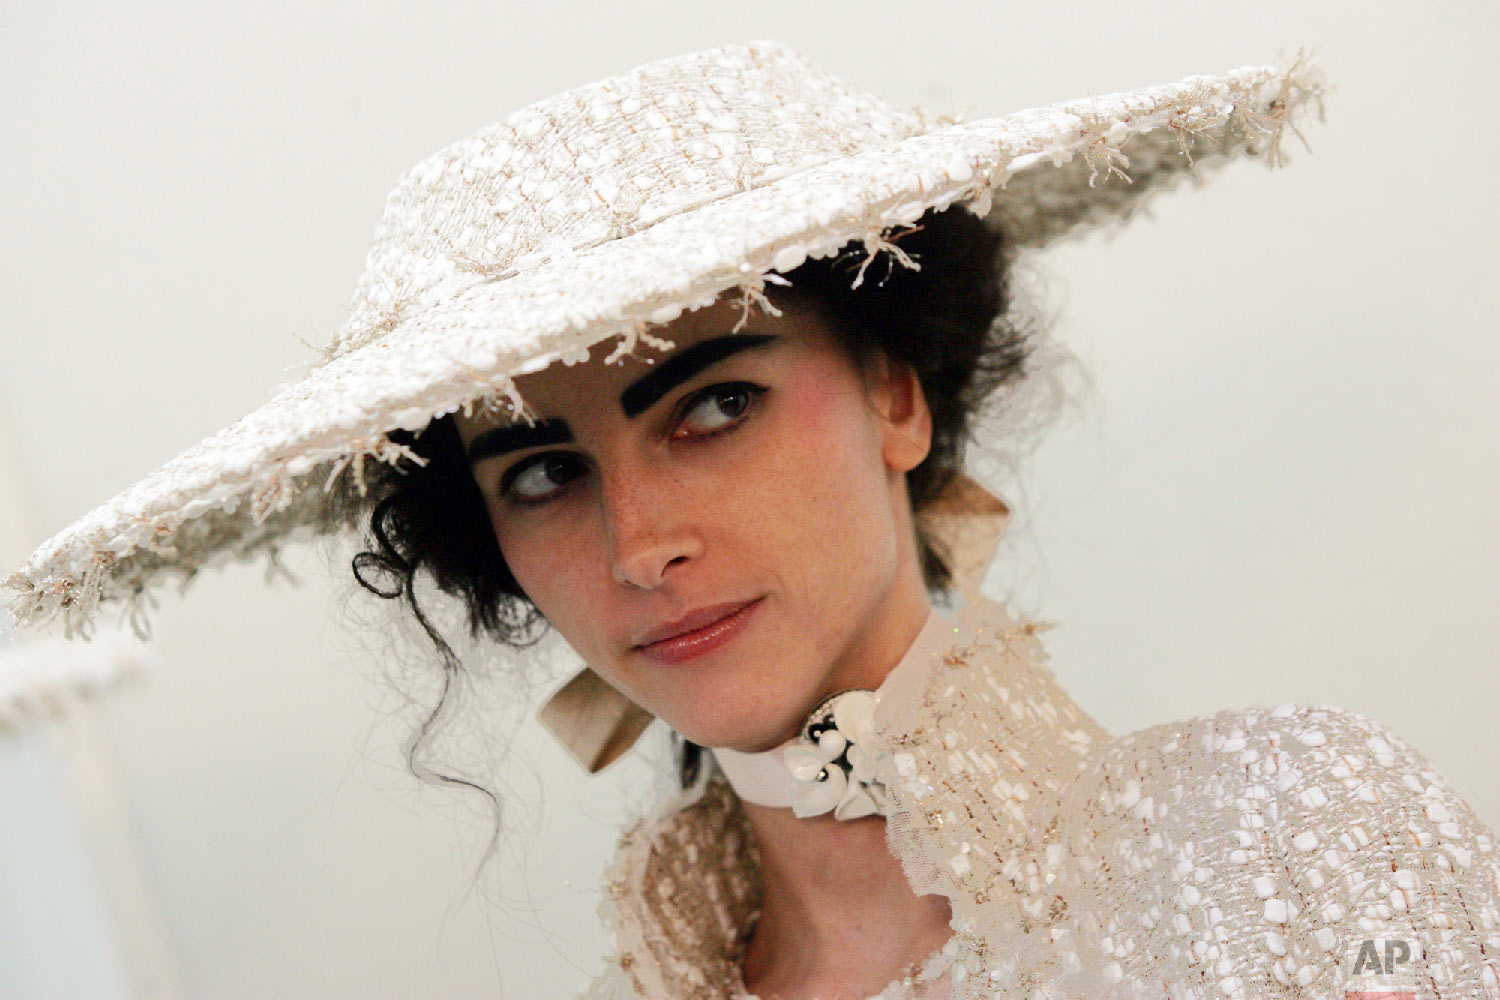 A model waits backstage before modeling for Chanel's spring-summer 2005 haute couture fashion collection designed by German fashion designer Karl Lagerfeld, presented in Paris, Jan. 25, 2005 in Paris. (AP Photo/Jerome Delay)